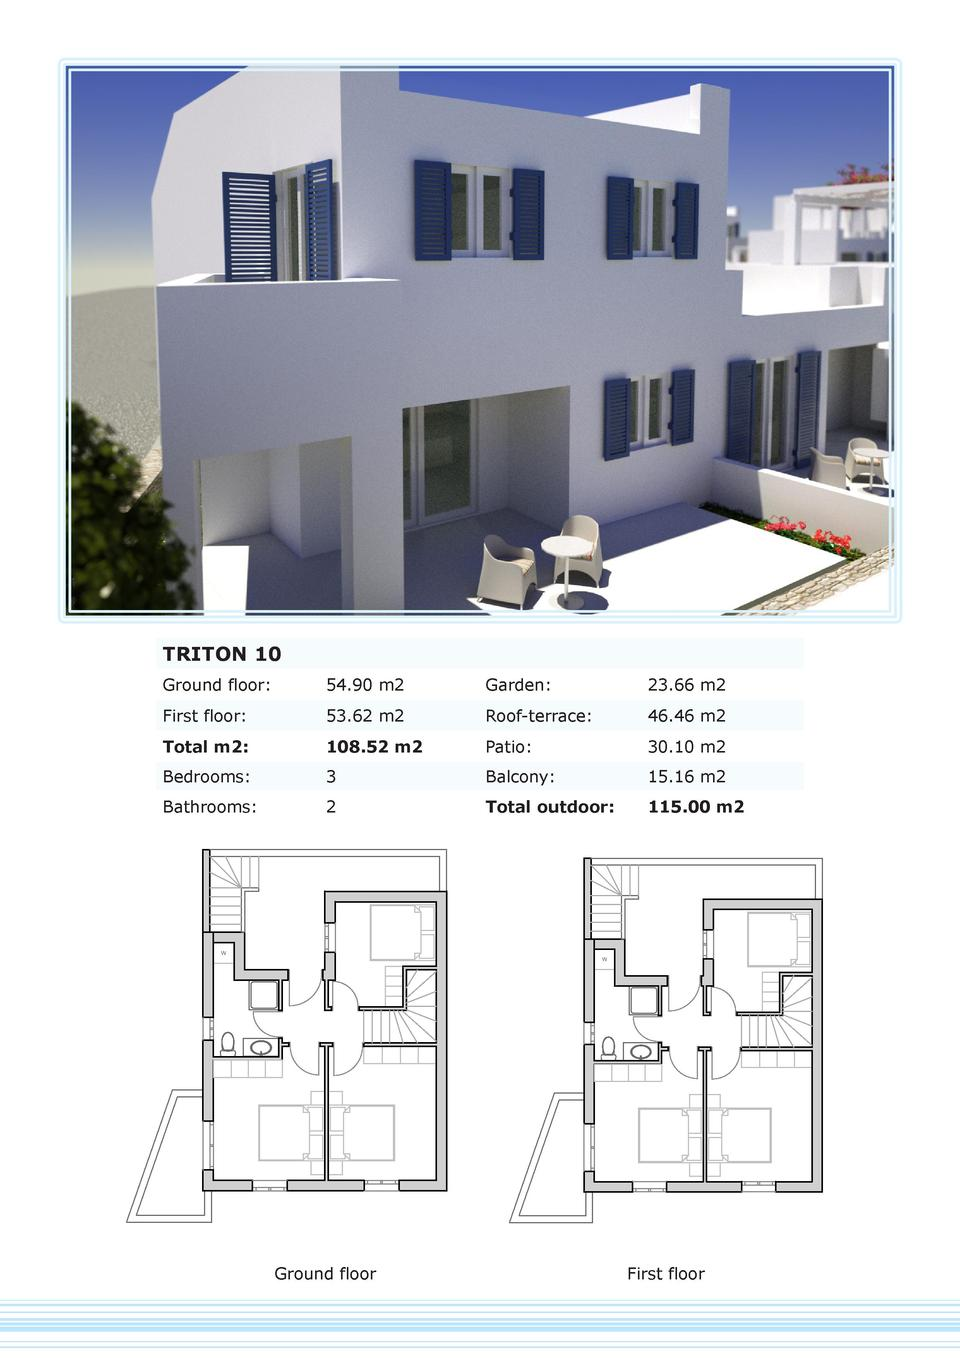 TRITON 10 Ground floor   54.90 m2  Garden   23.66 m2  First floor   53.62 m2  Roof-terrace   46.46 m2  Total m2   108.52 m...